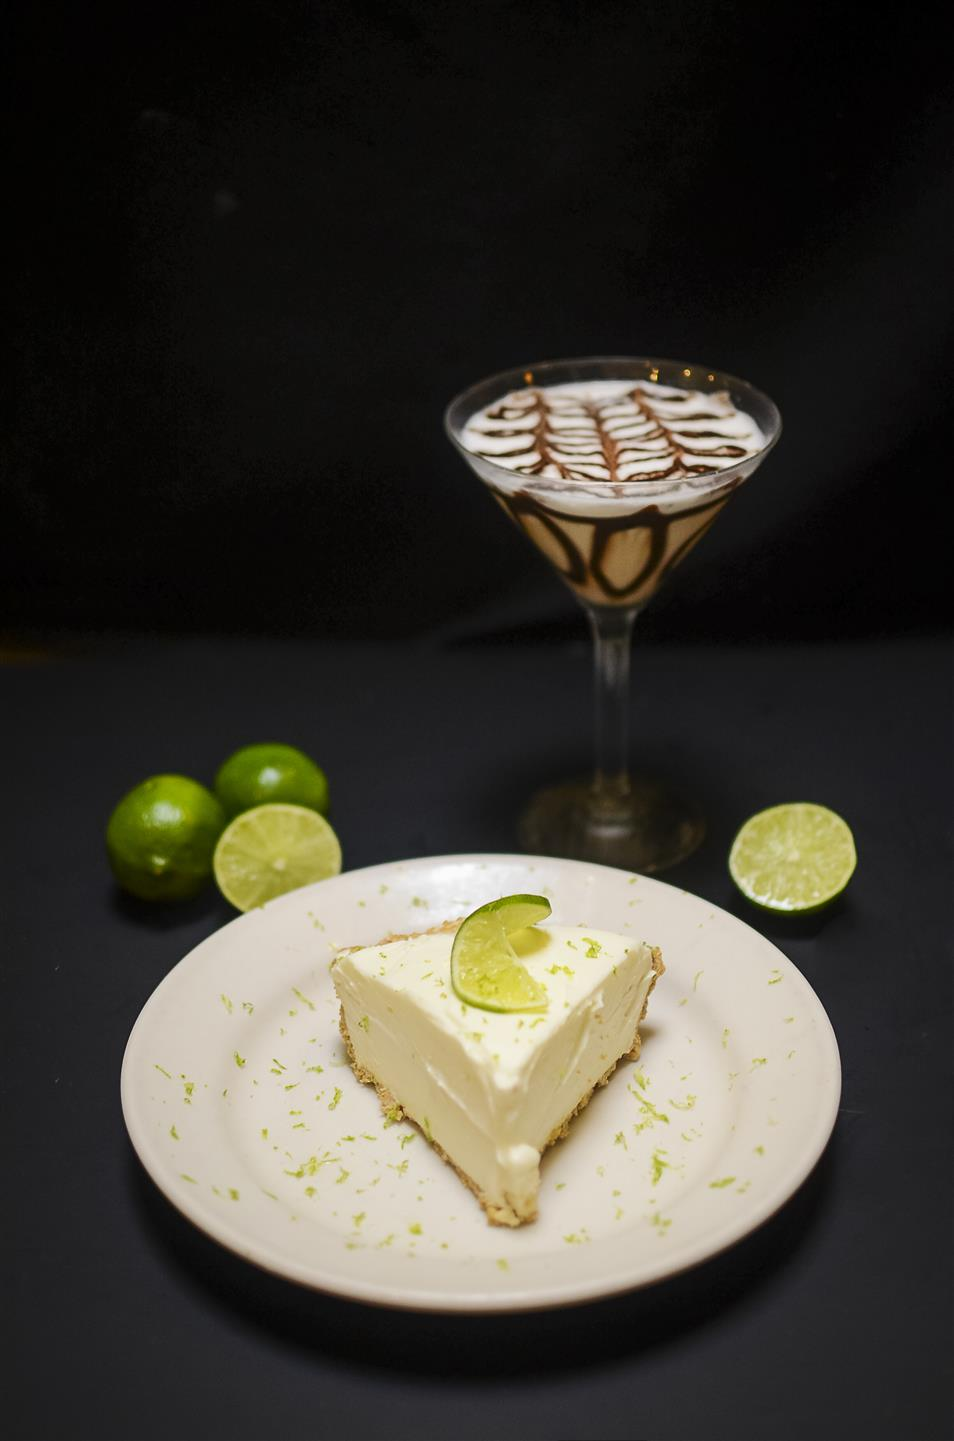 key lime cheesecake with fresh limes and a chocolate martini